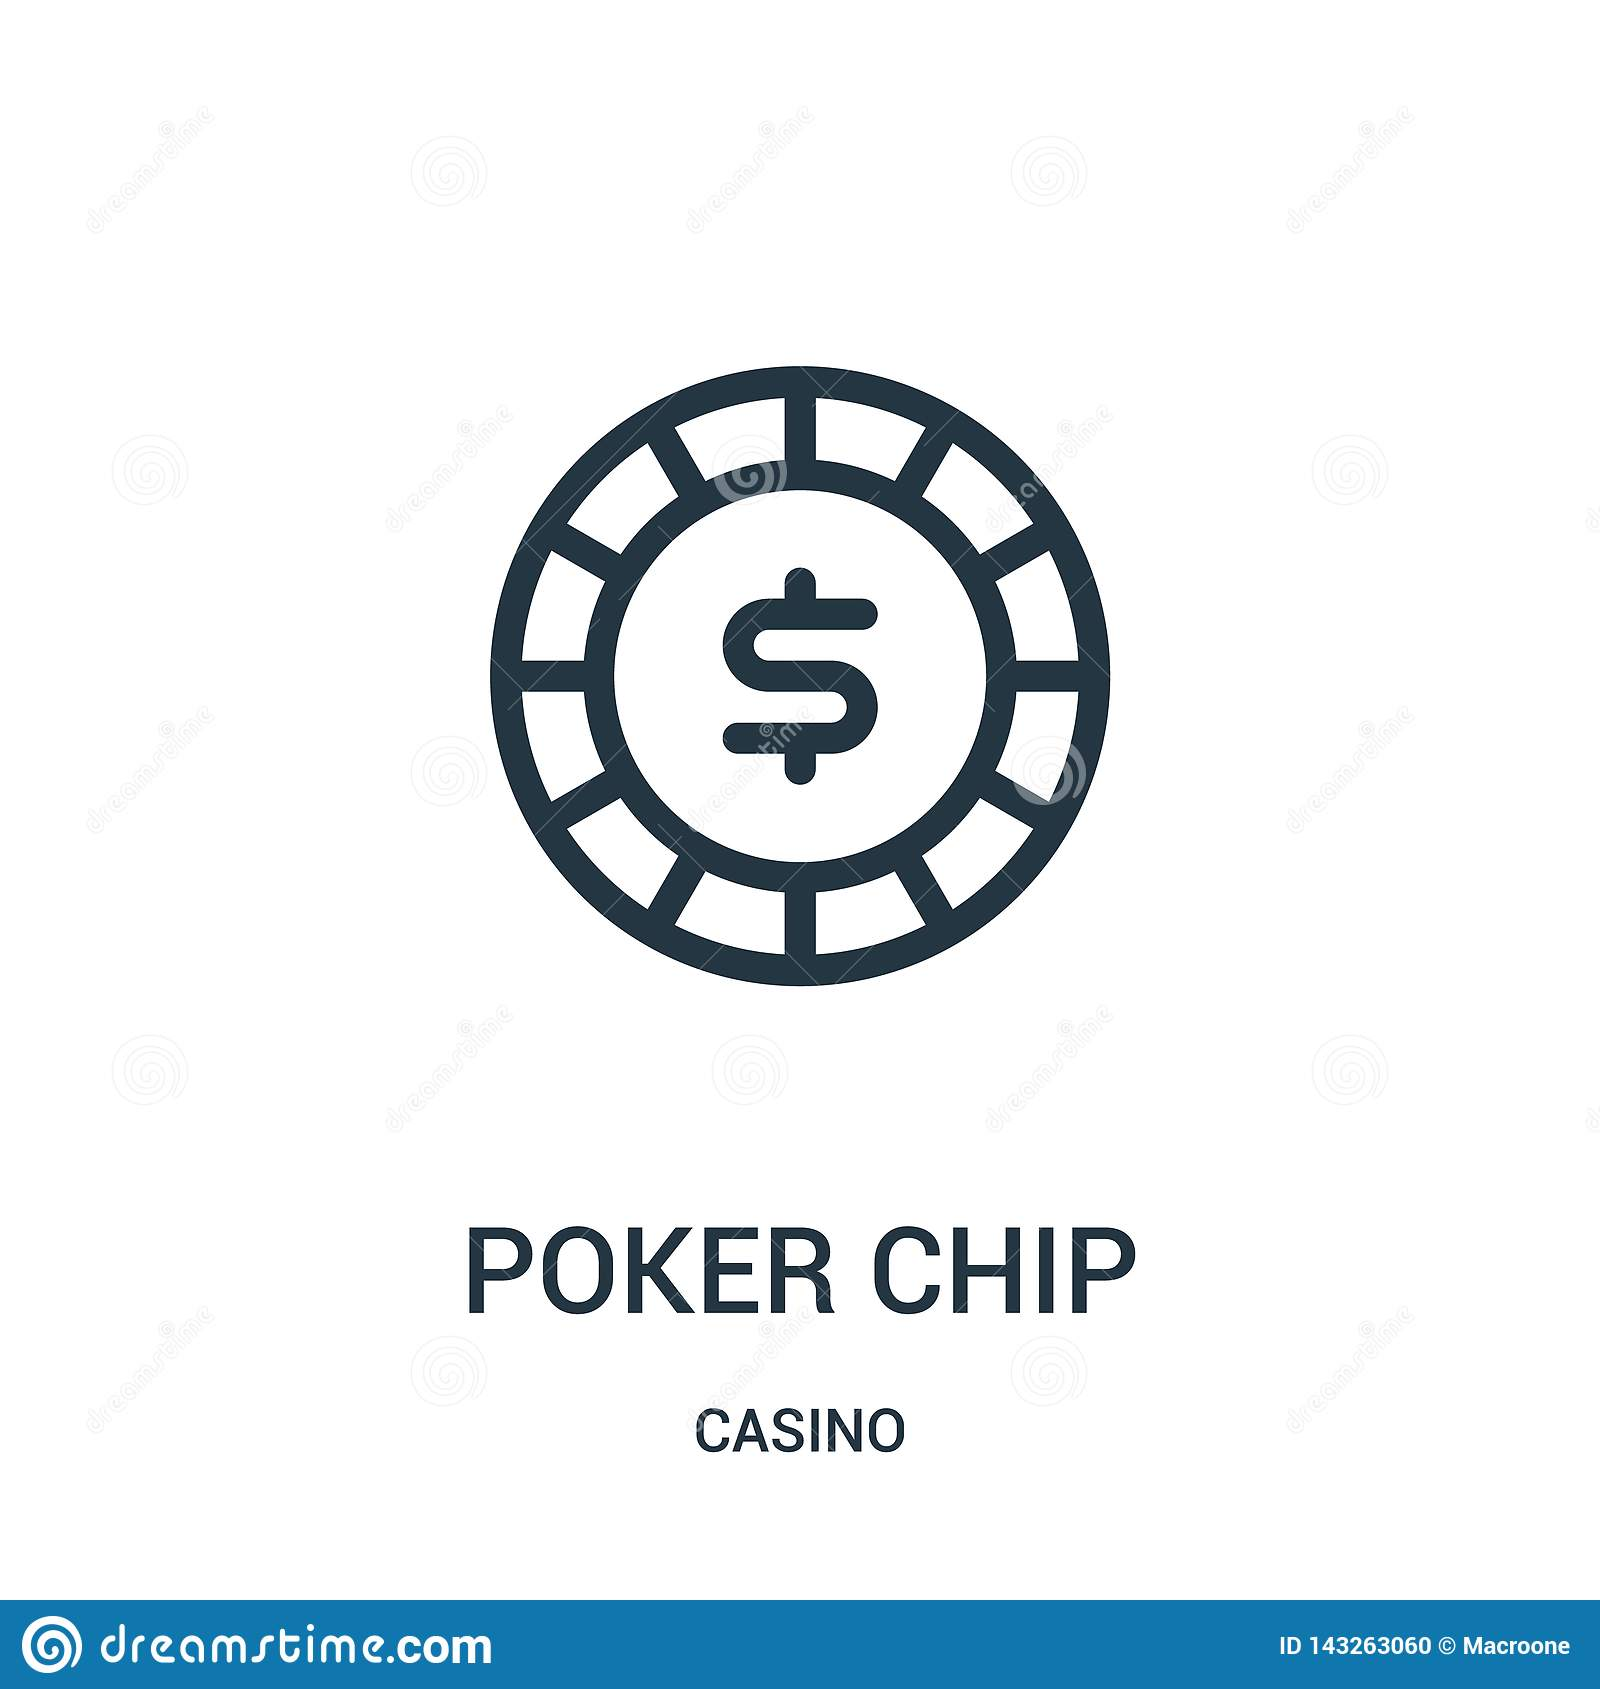 poker chip icon vector from casino collection. Thin line poker chip outline icon vector illustration